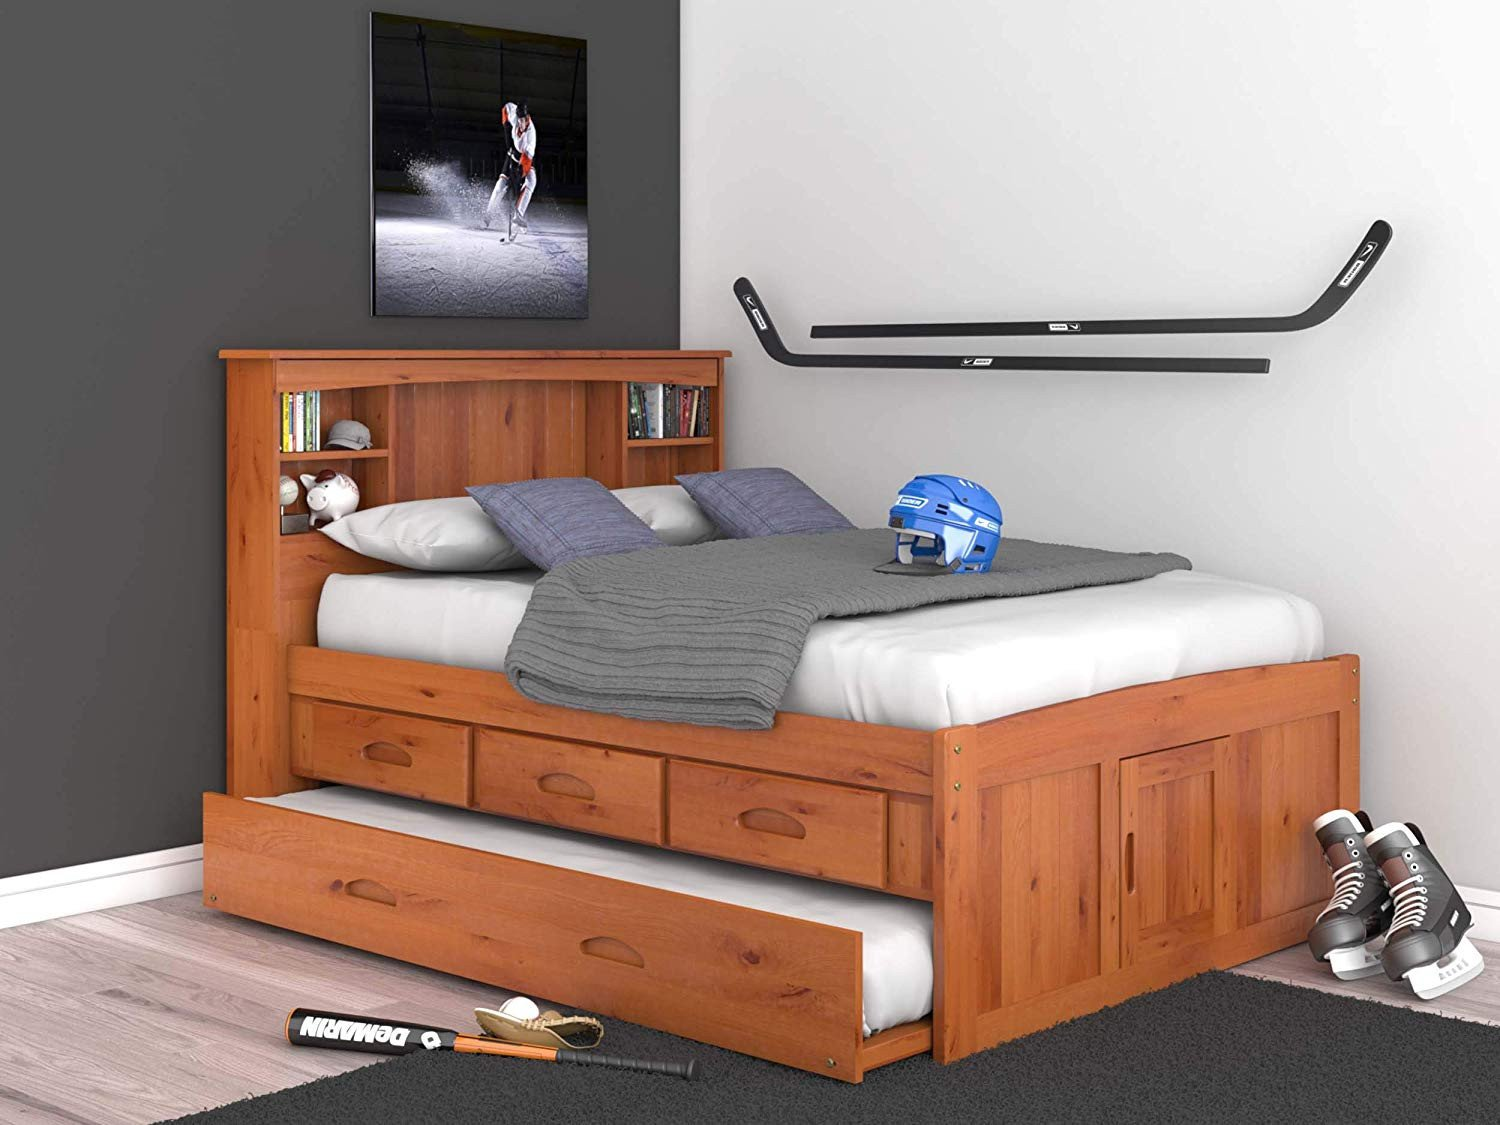 Twin Trundle Bedroom Set Inspirational Discovery World Furniture Full Captains Bed Bookcase with 3 Drawers and Trundle Desk Hutch and Chair In Honey Finish